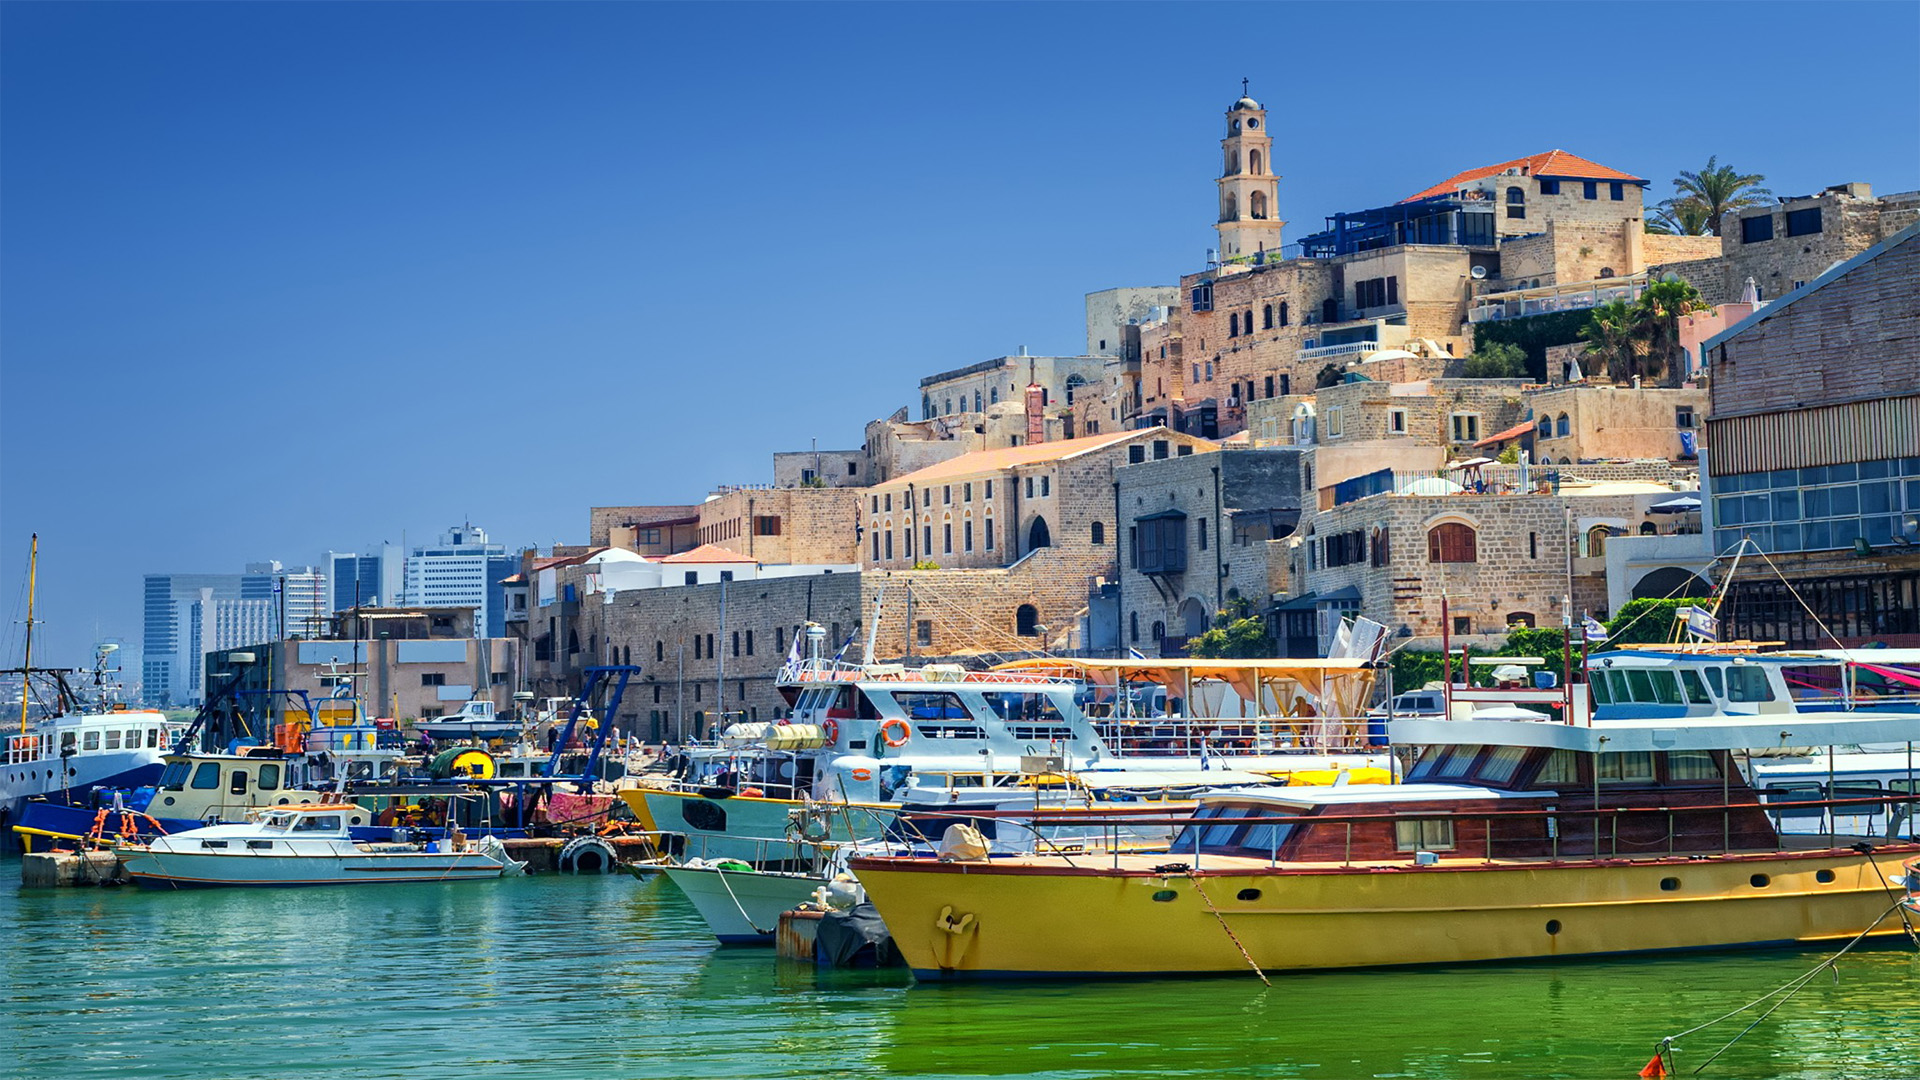 A view of old Jaffa. Photo via shutterstock.com